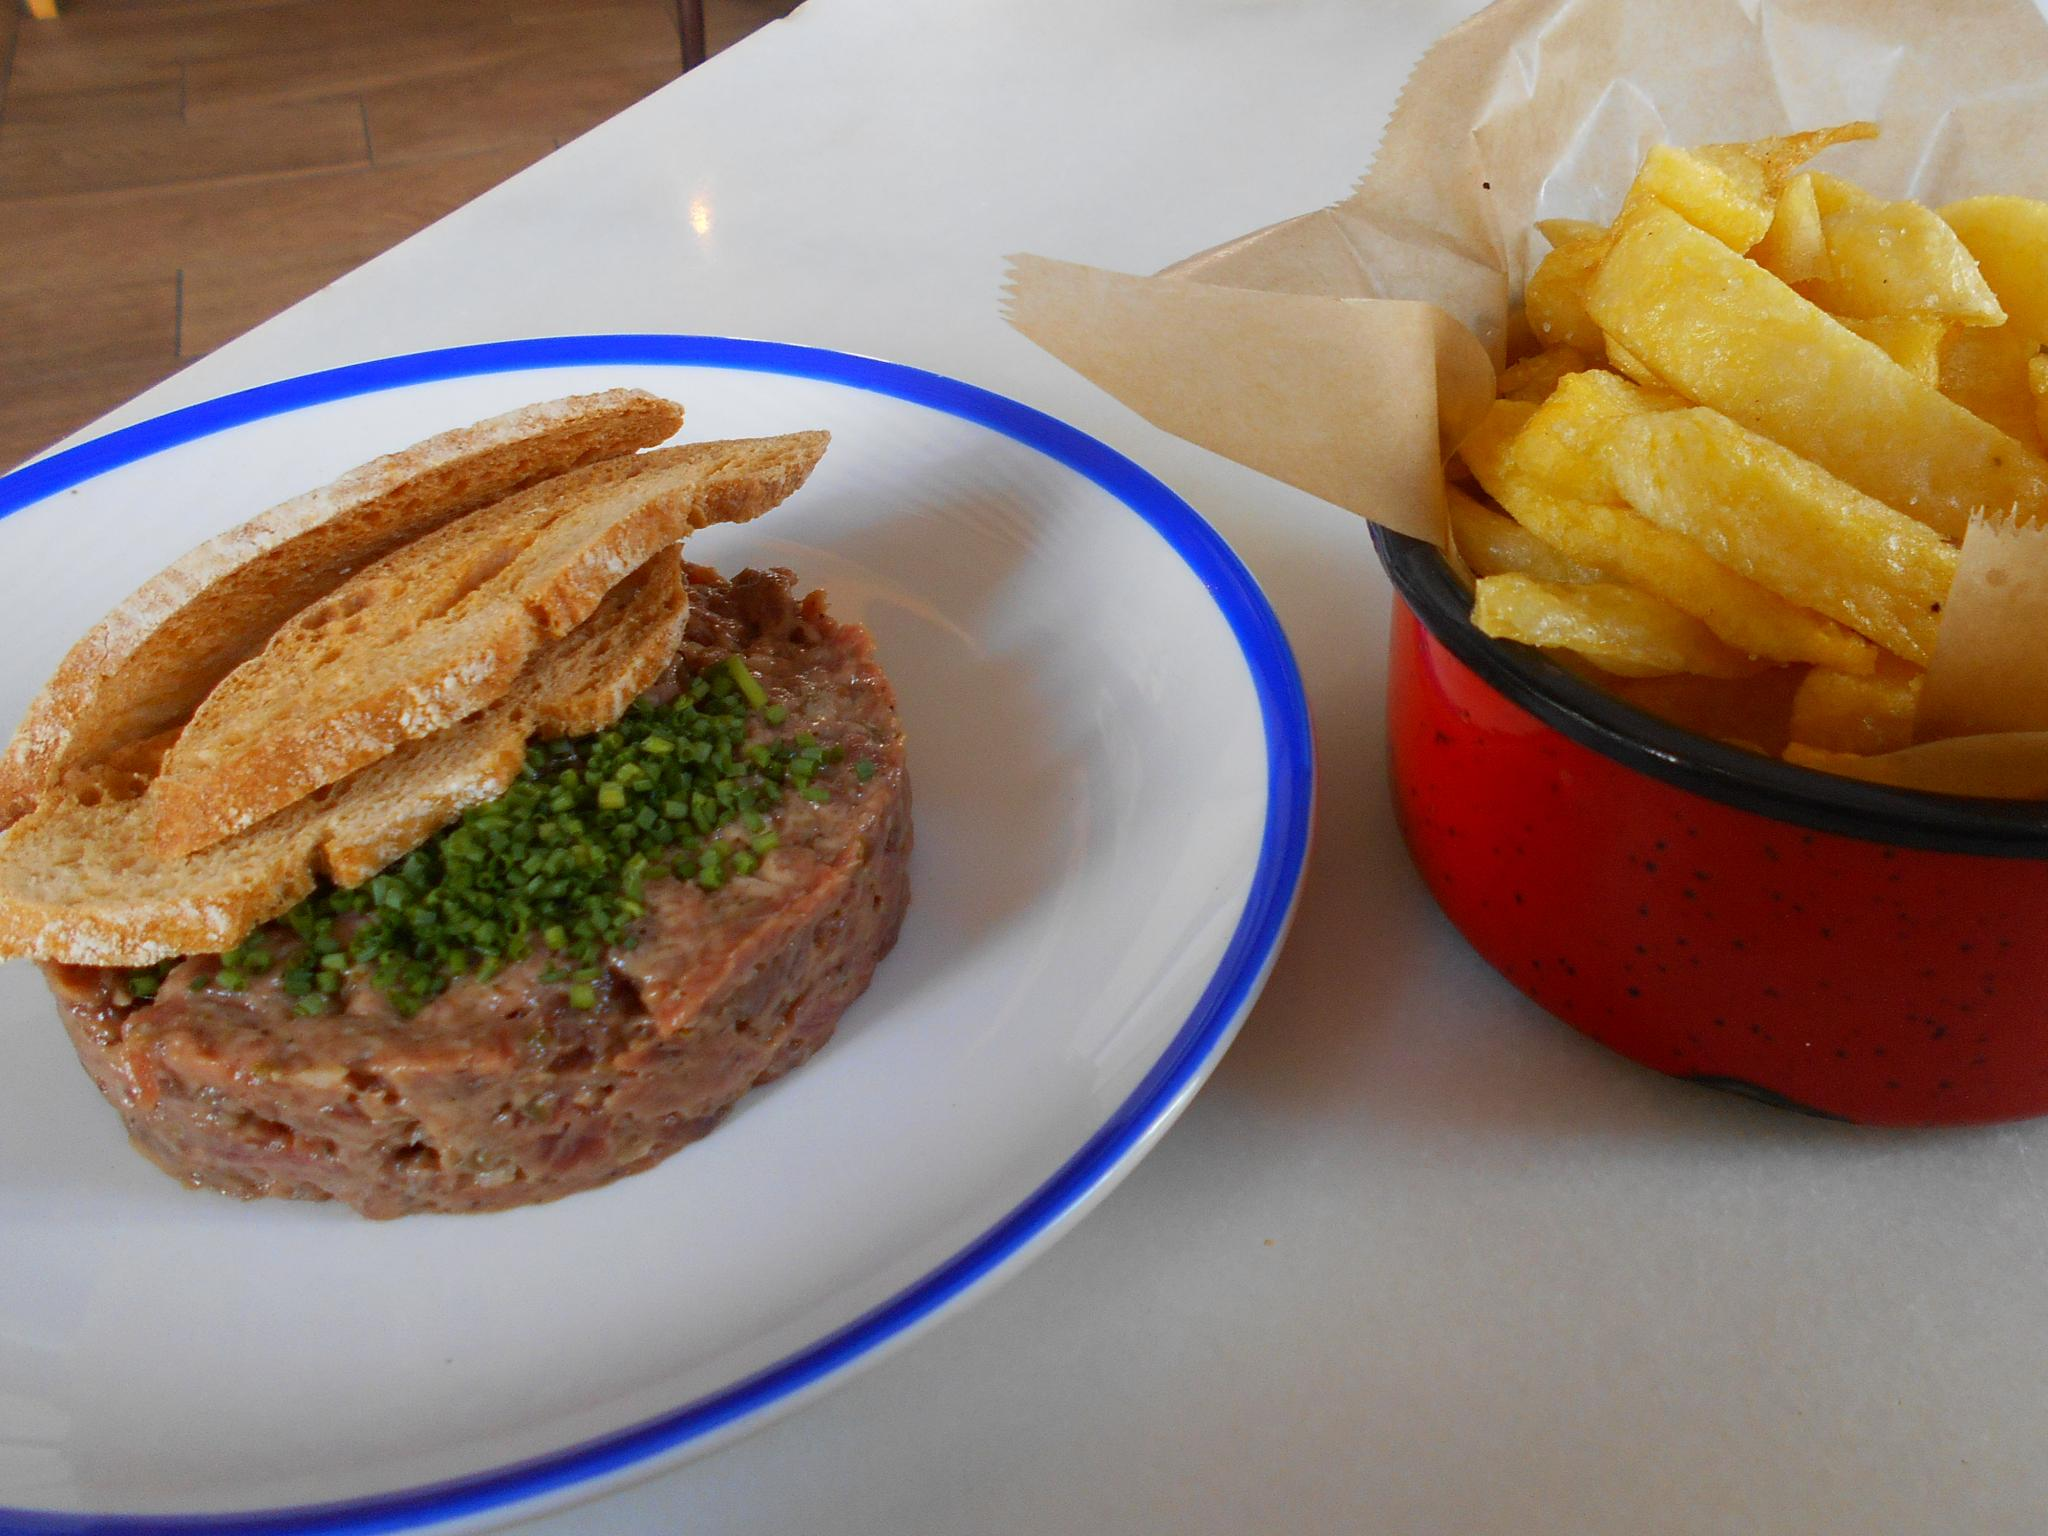 The steak tartar was discoloured and too peppery